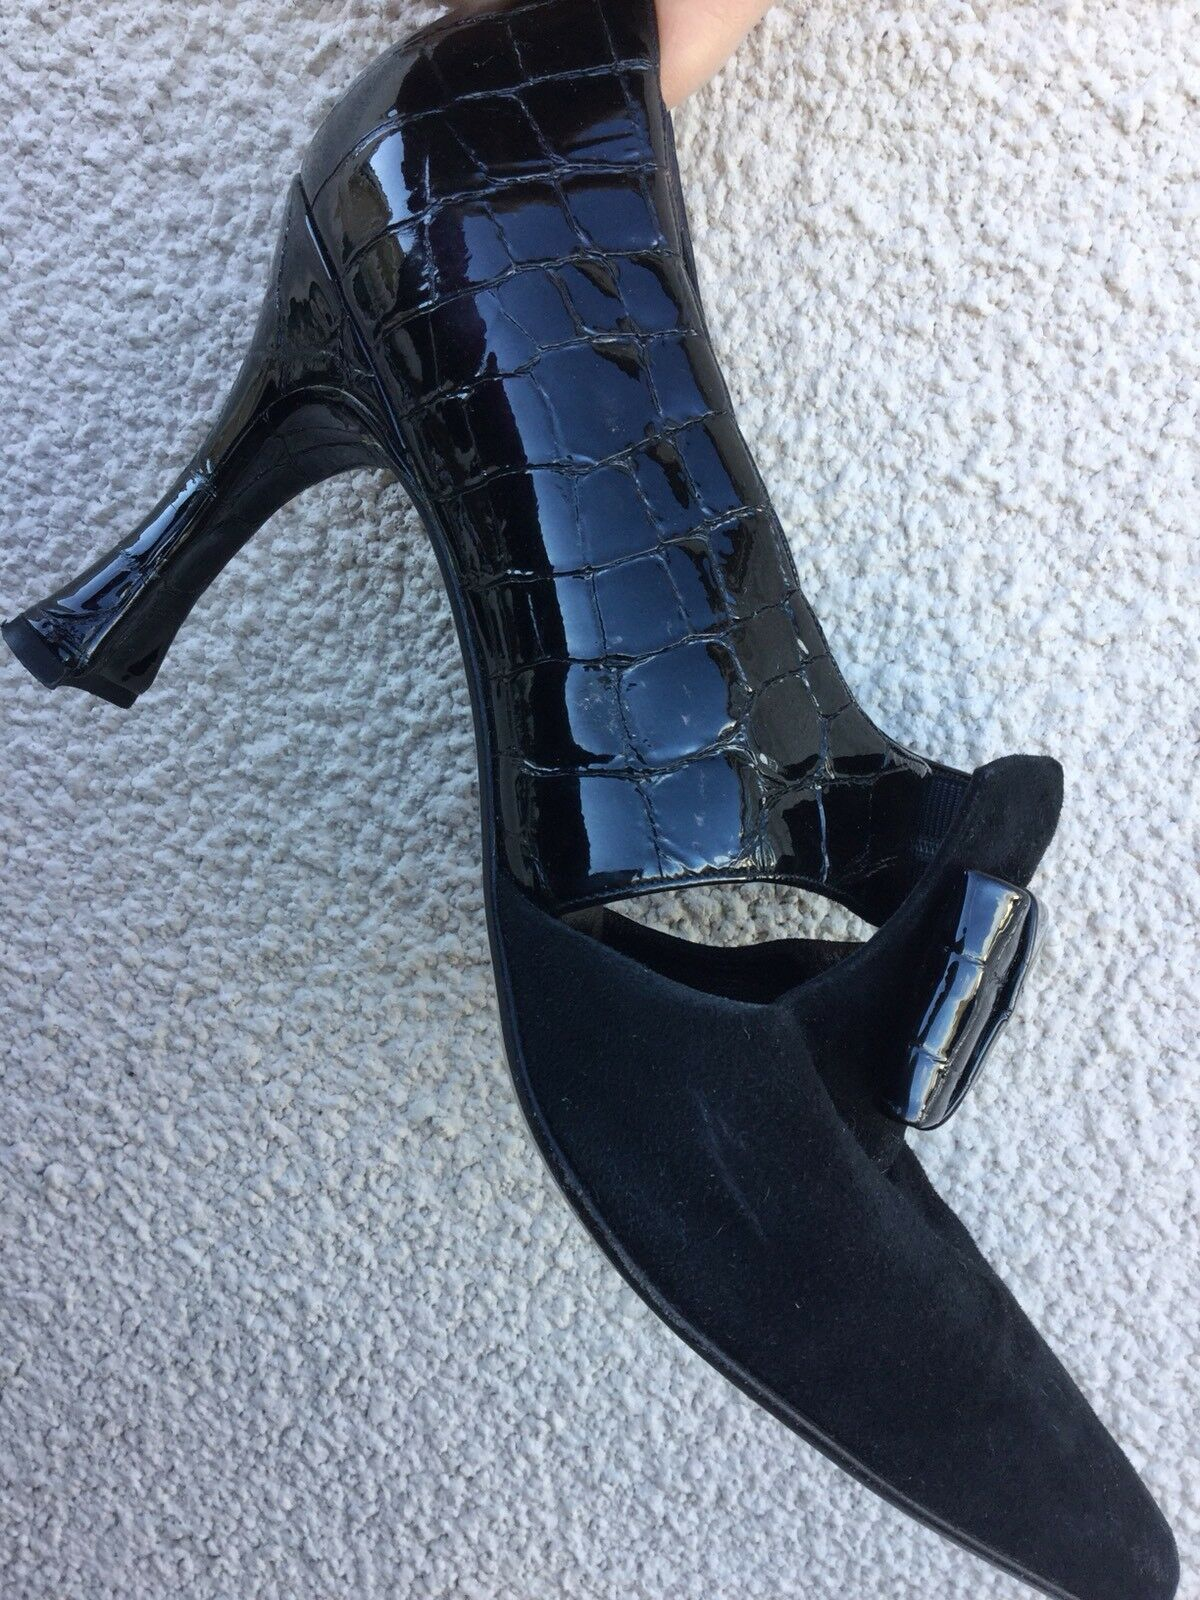 GINA BLACK LEATHER VINTAGE 80s 20s DECO STYLE CROC PATENT HEELS Schuhe 7 40 Sexy